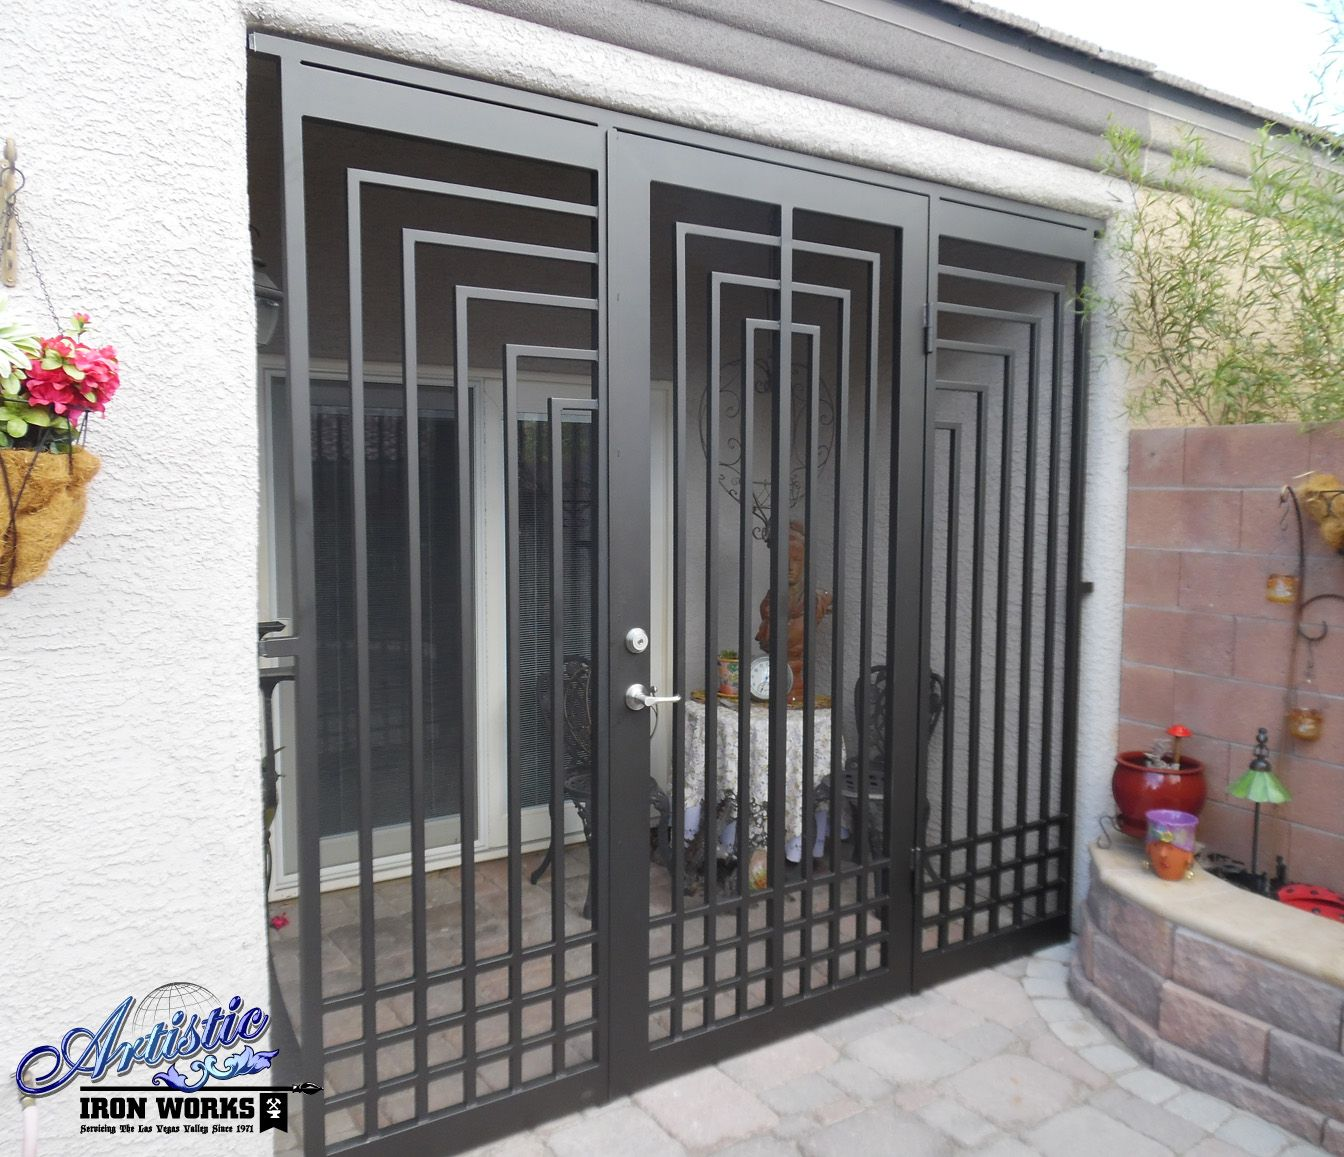 Gate Grill Iron Grill: Escher - Wrought Iron Entryway - Model: EW0422B